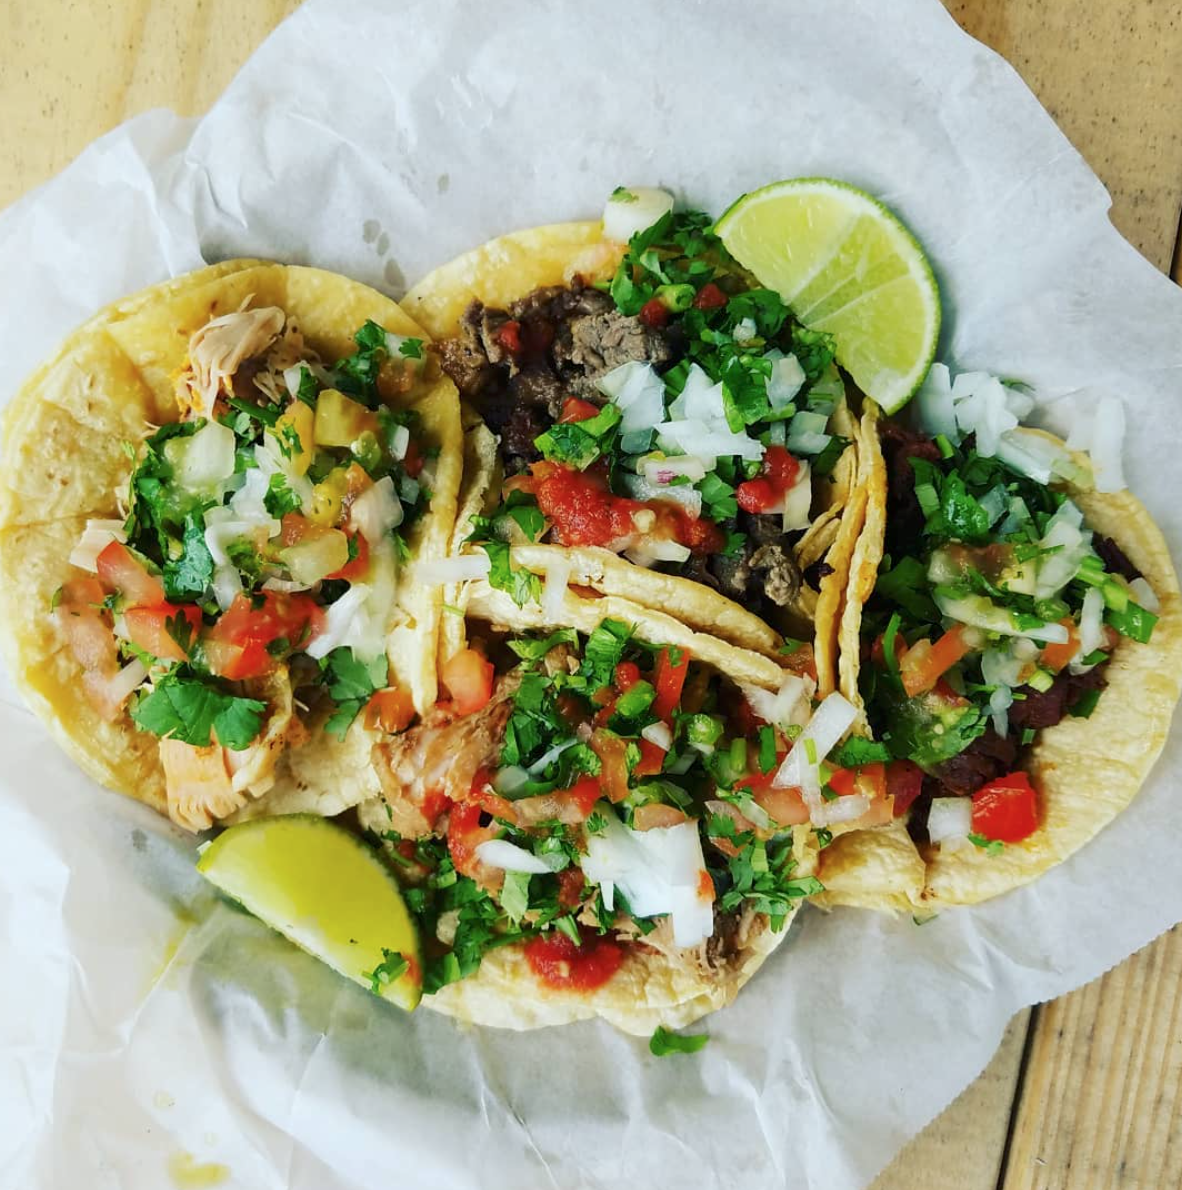 We have a series of different food trucks that rotate through out the week, come catch your favorite ones or try something our resident food truck serving street tacos, quesadillas, burritos, and nachos. You have to try the Guac!